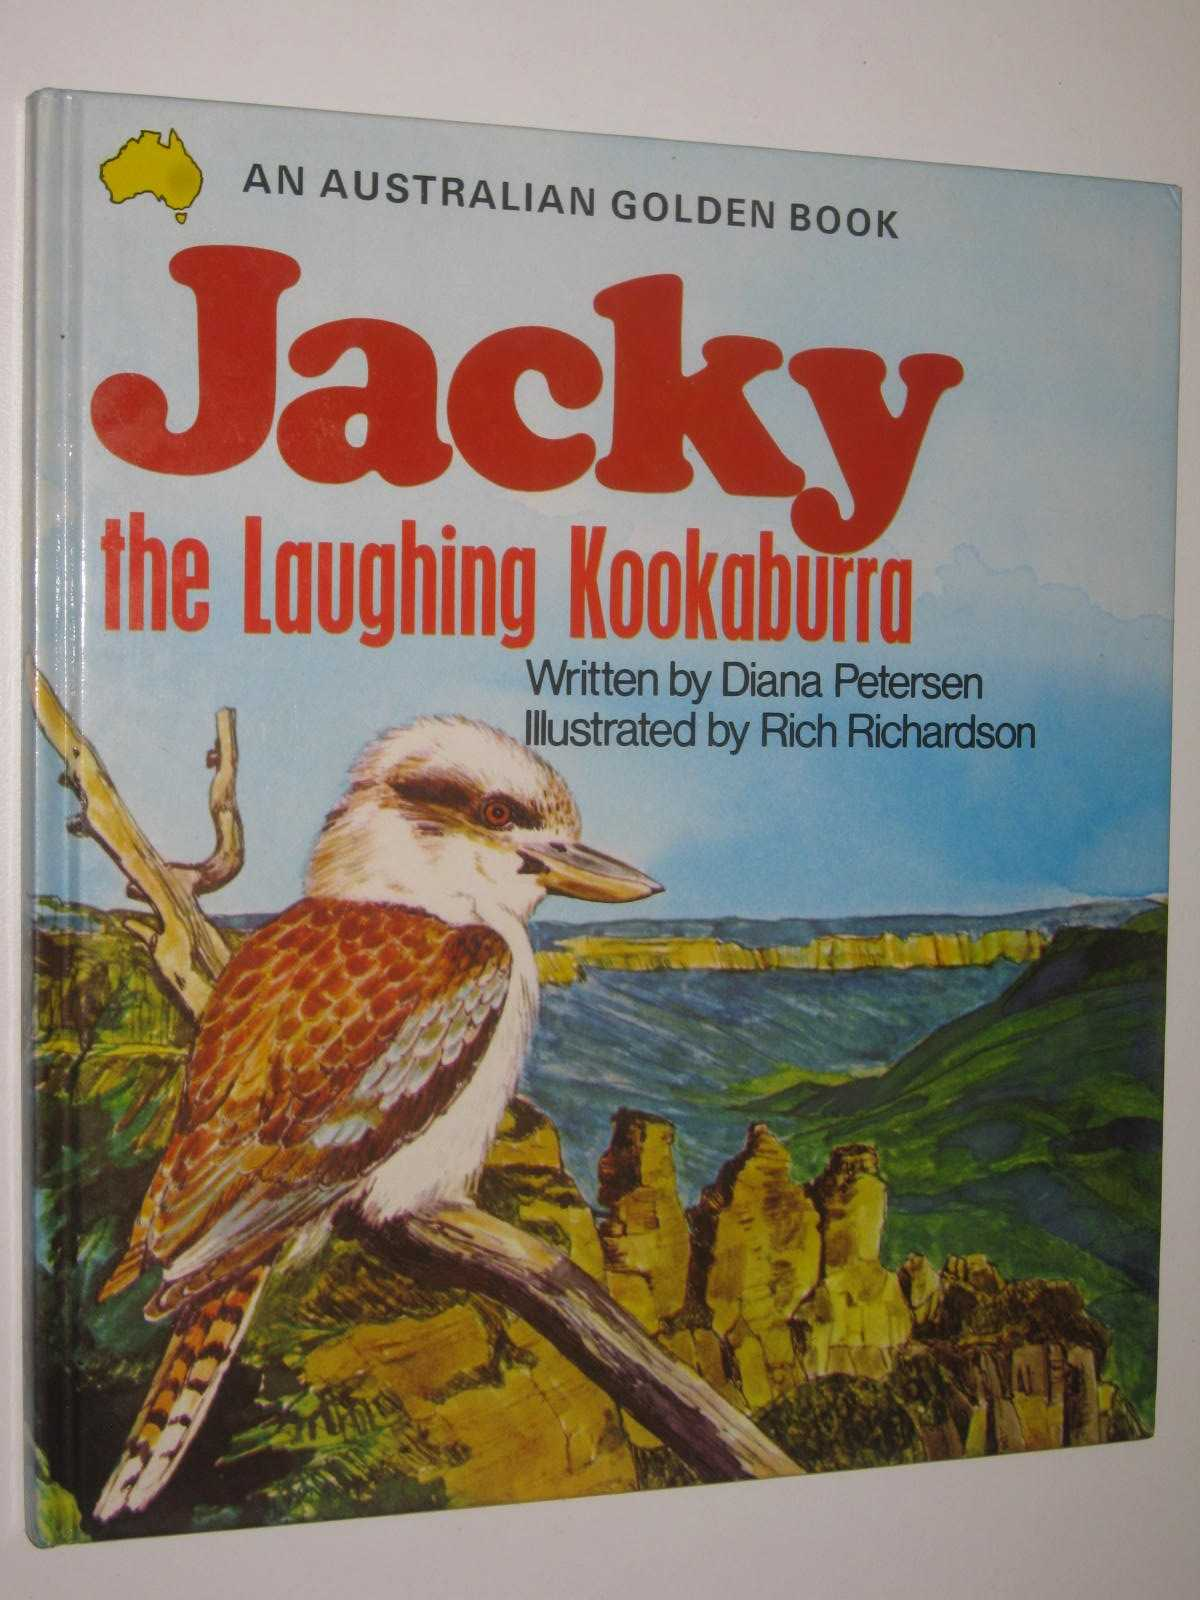 Image for Jacky the Laughing Kookaburra - An Australian Golden Book Series